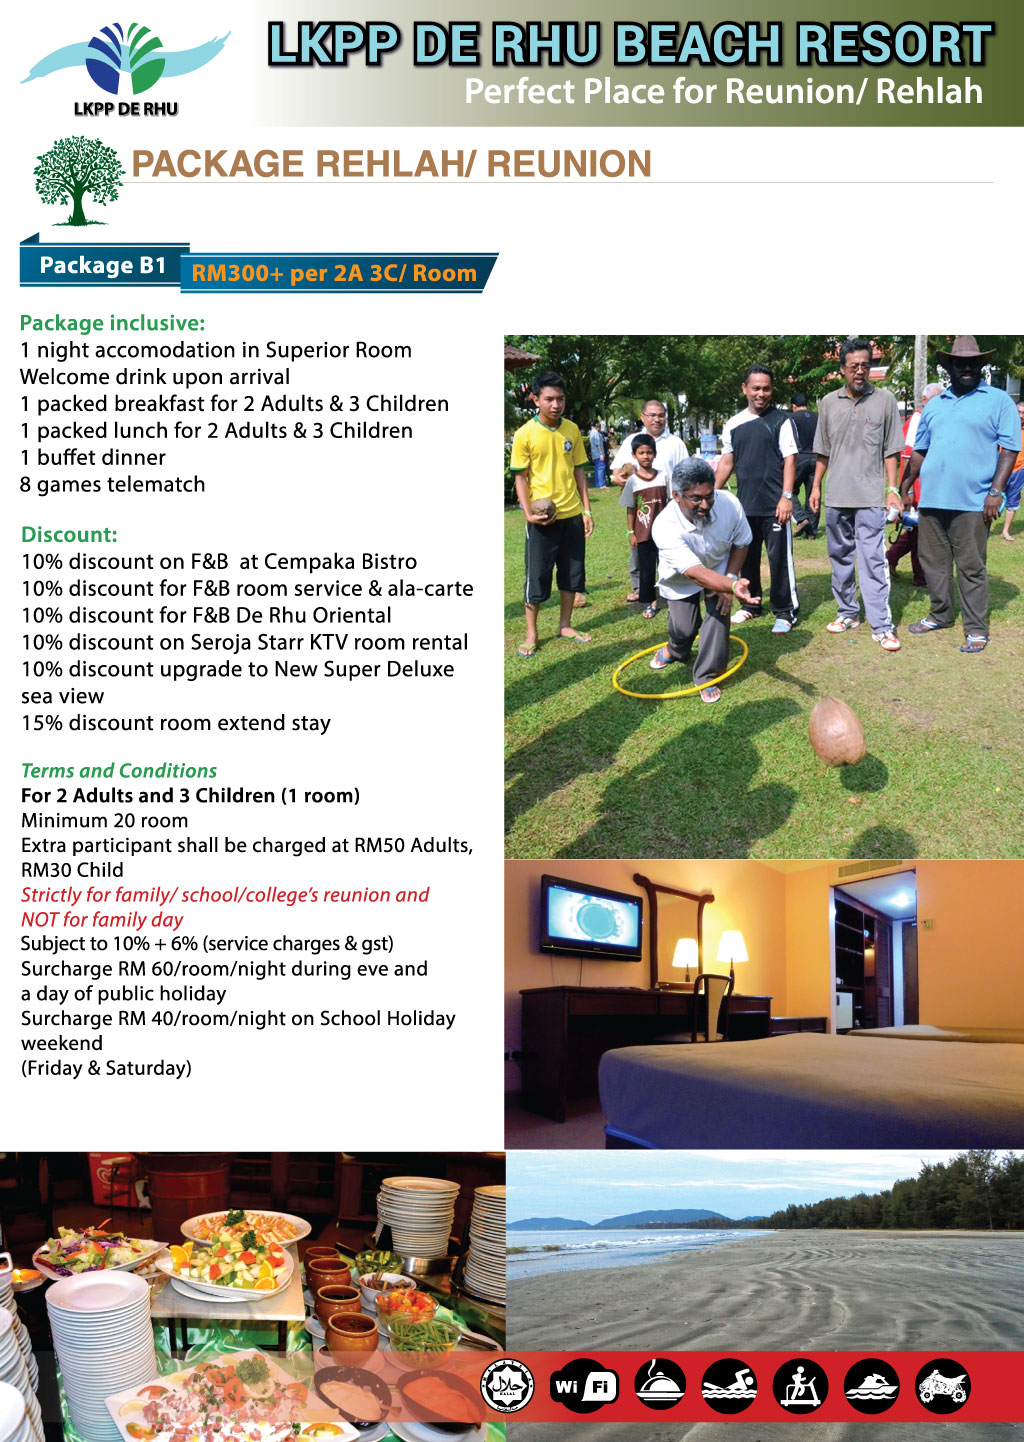 De-Rhu-Beach-Resort-Rehlah-Reunion-Package-2016-back-page